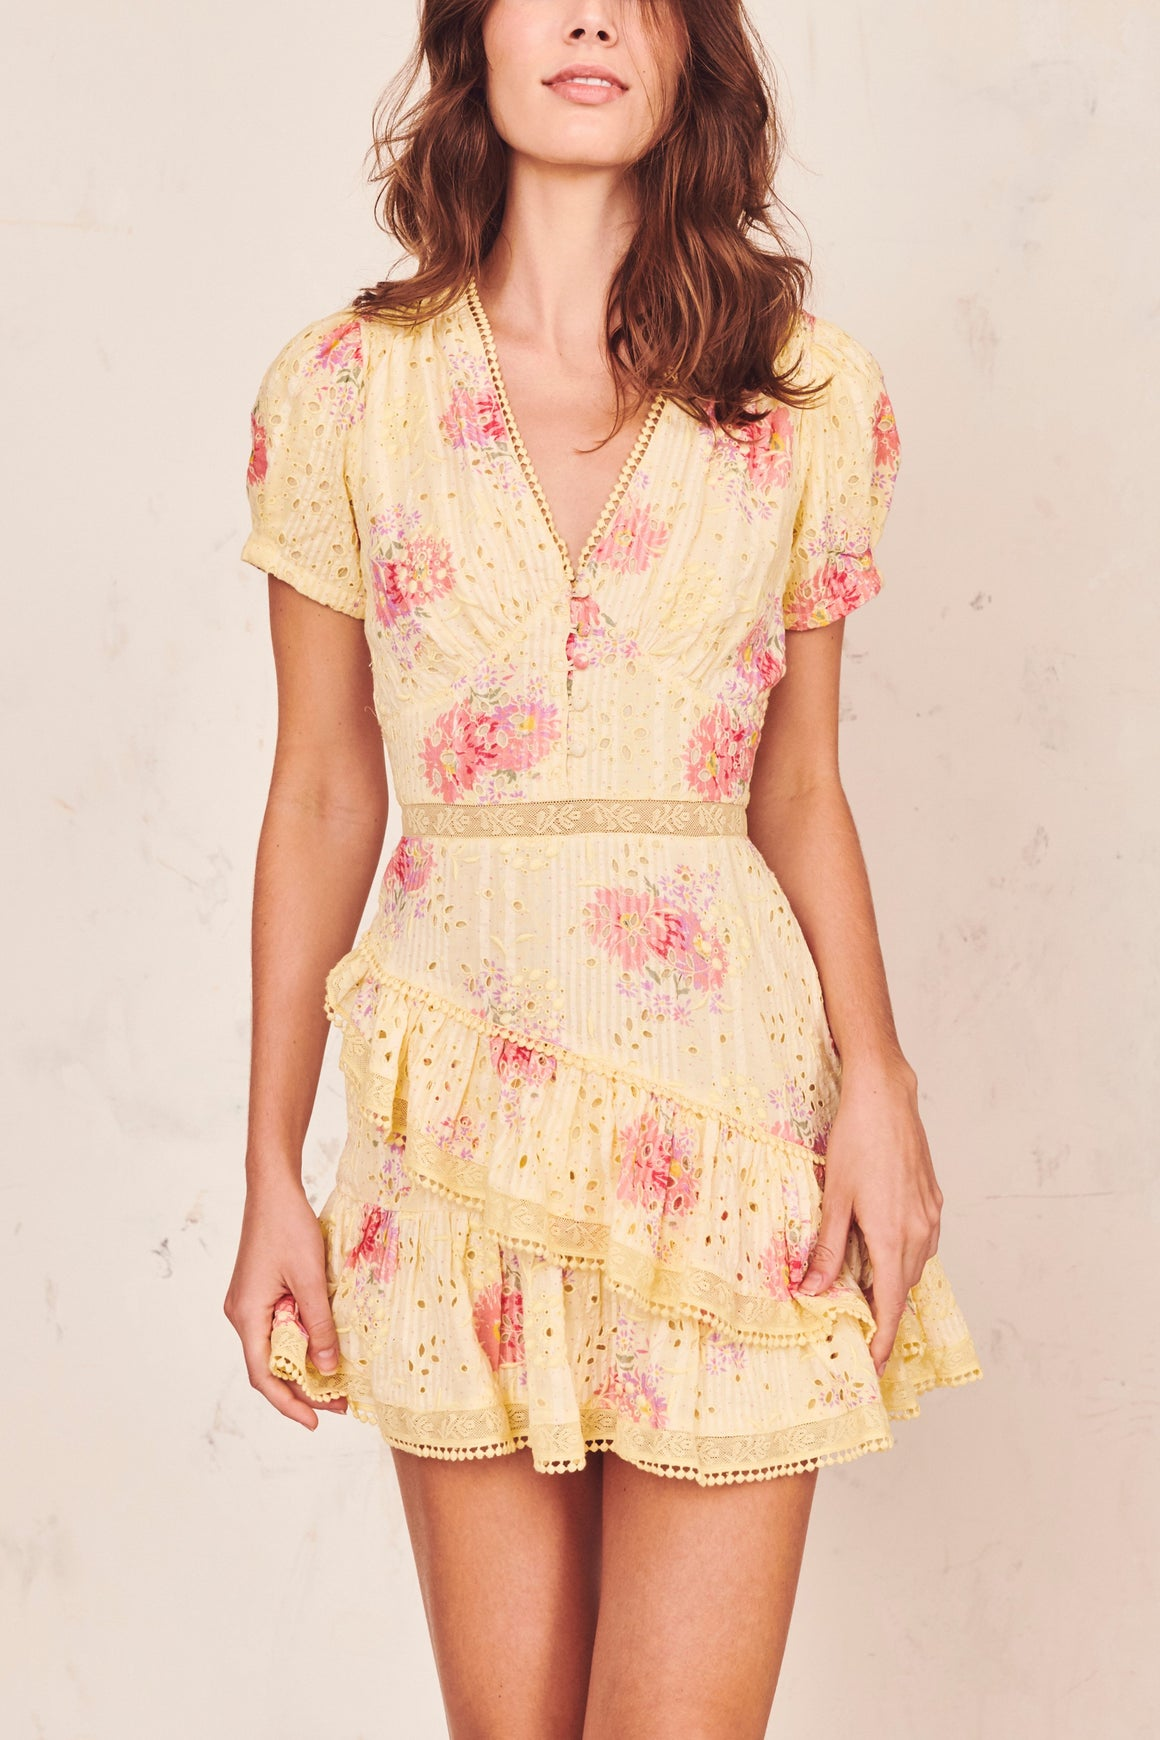 Bea Dress Mellow Yellow - LoveShackFancy Virtual Trunk Show-Dresses-LoveShackFancy-Max & Riley